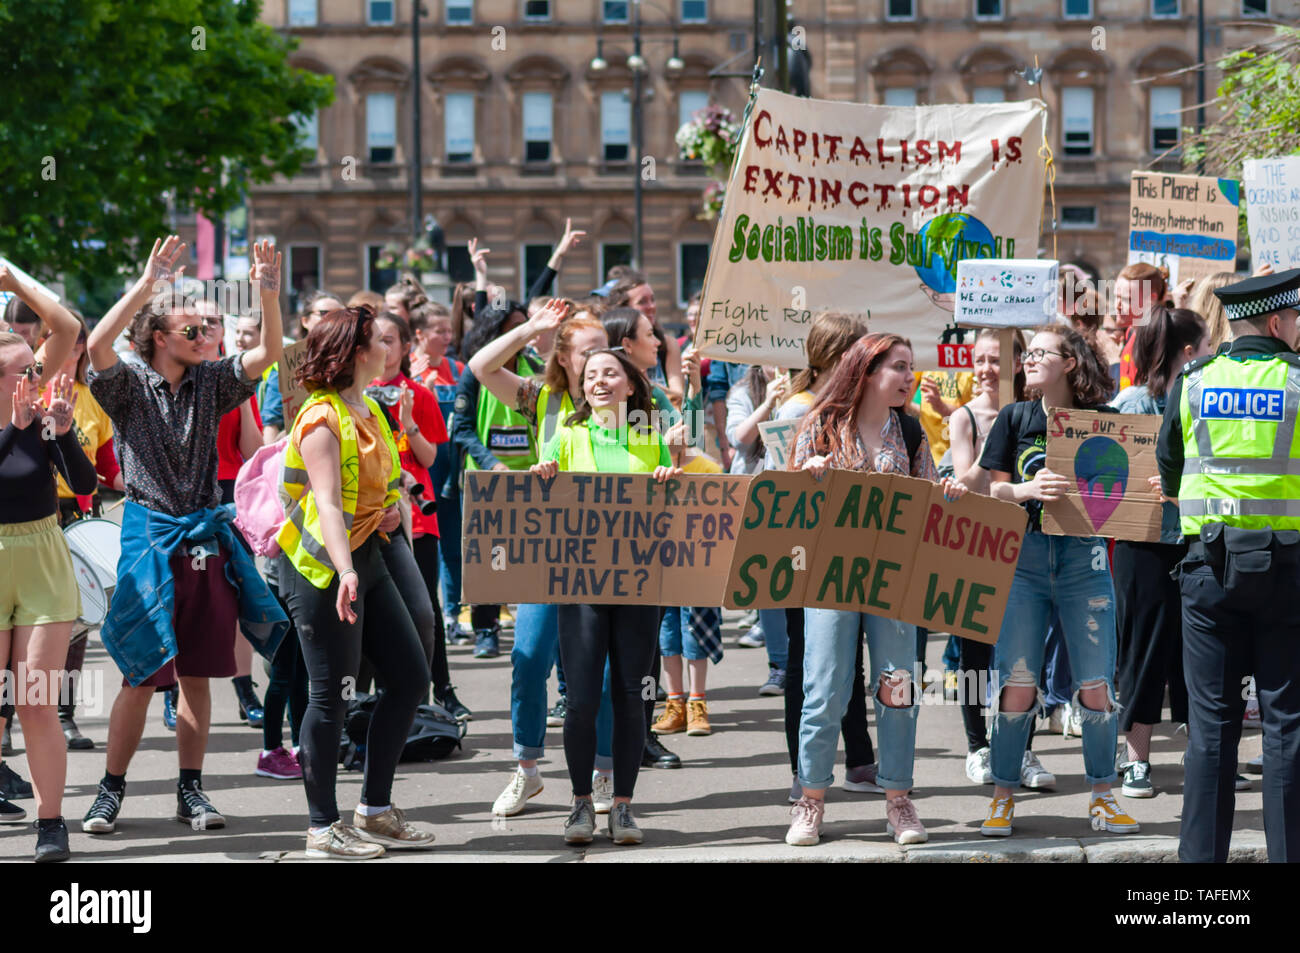 Glasgow, Scotland, UK. 24th May, 2019. Youth Strike 4 Climate student demonstration. Students across the UK are protesting against climate change and the lack of action by the Government.  Credit: Skully/Alamy Live News Stock Photo